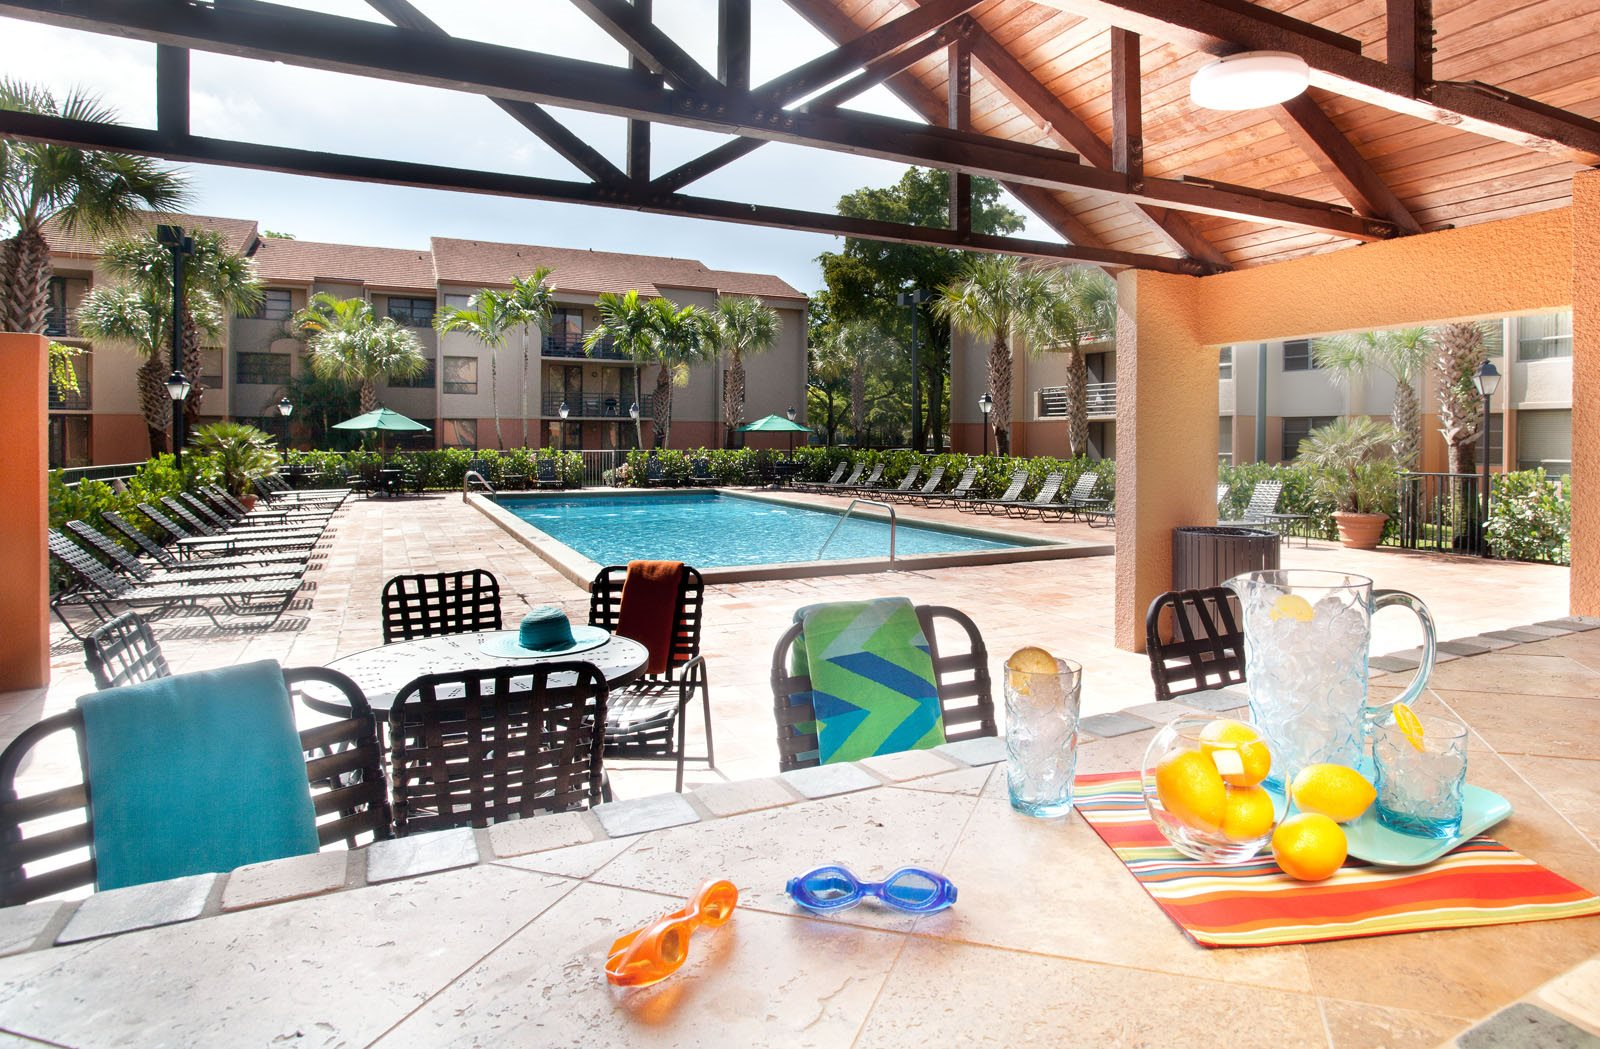 New Barn Apartments | Apartments in Miami Lakes, FL